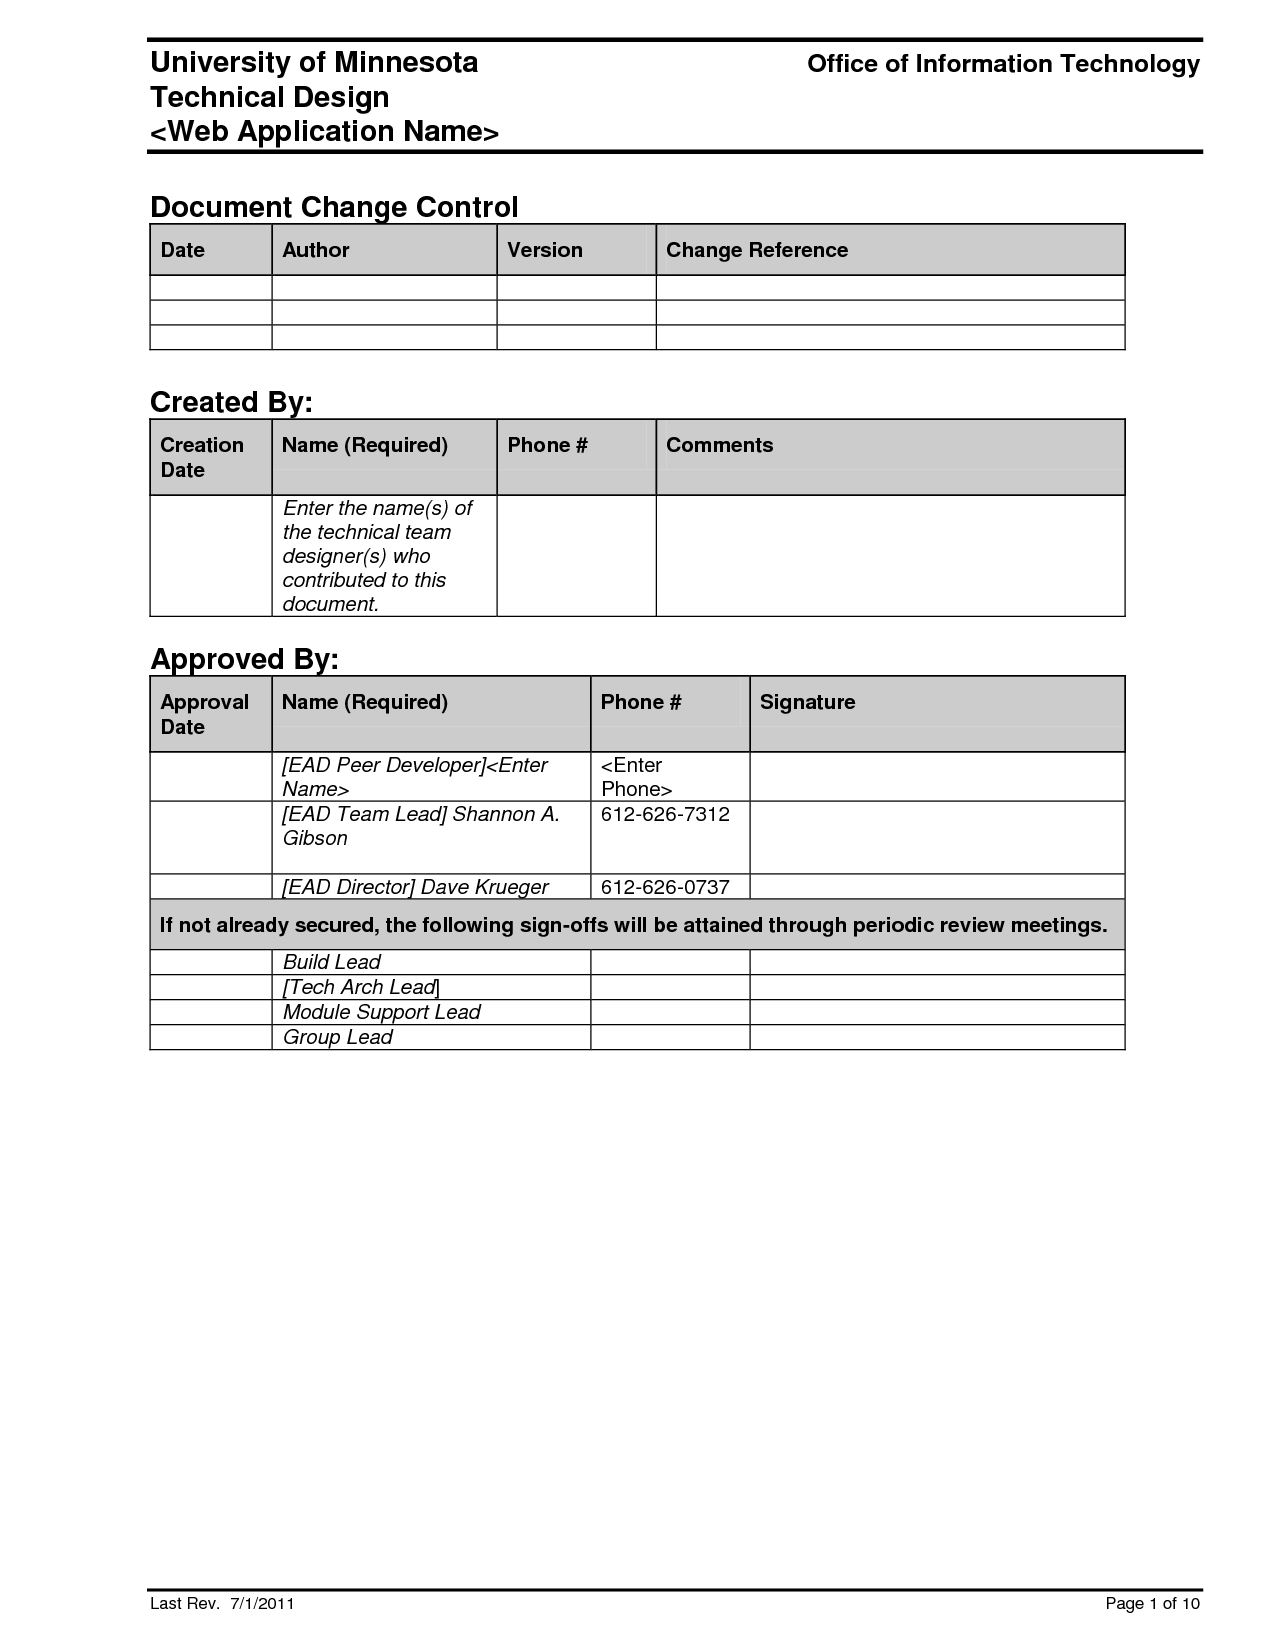 Design document templates (ms wordexcel) + data dictionary.